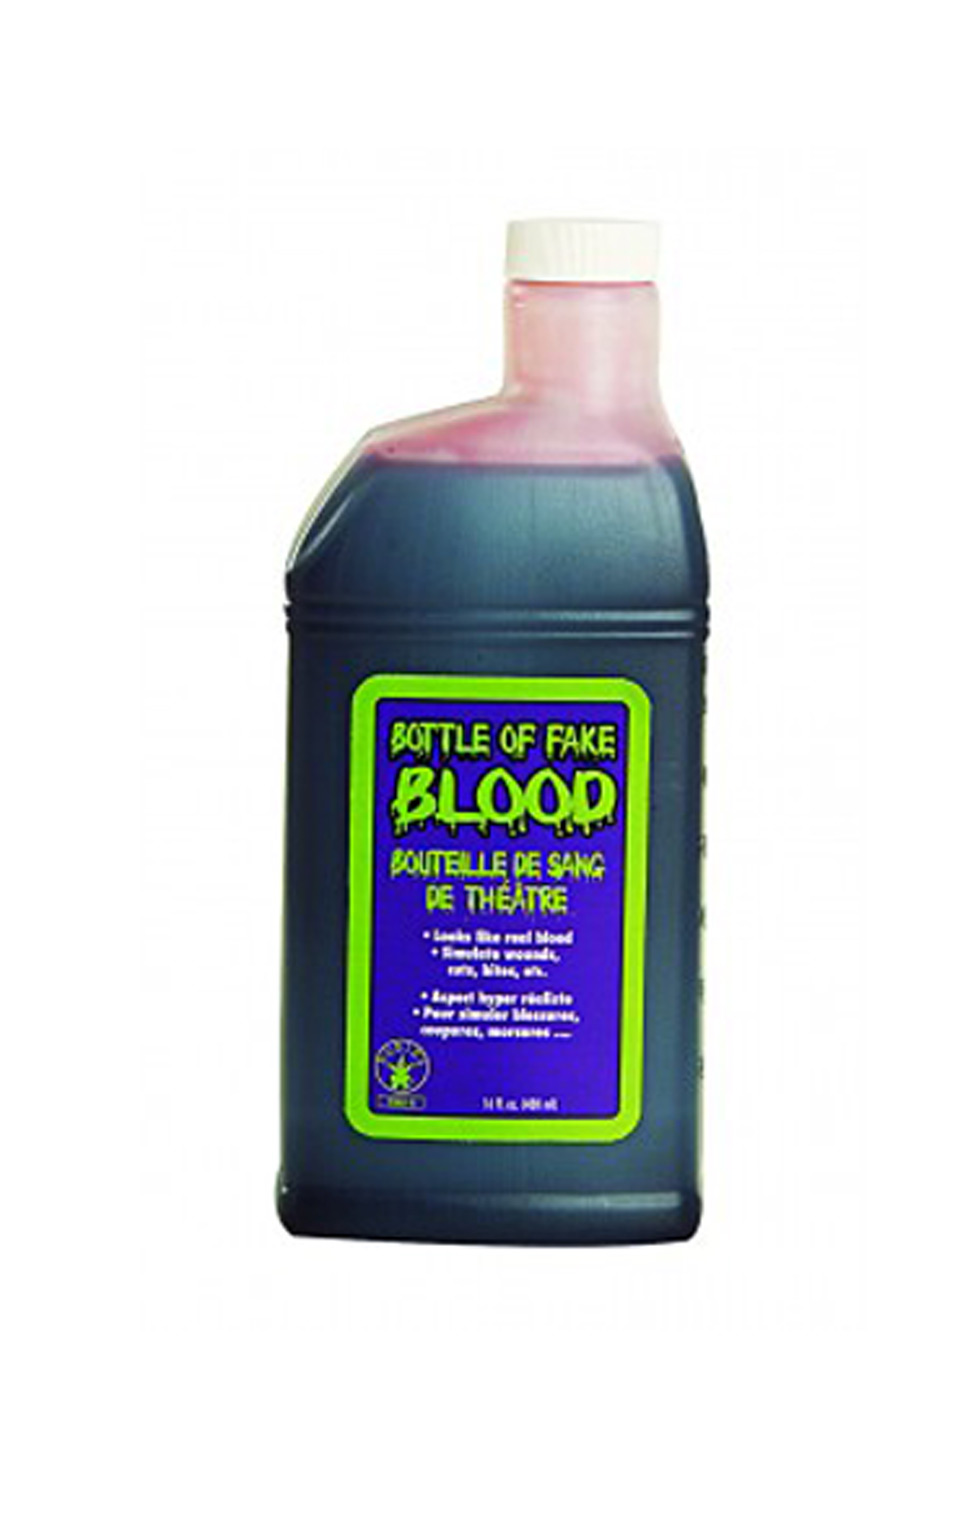 Bottle of Blood 16 fl.oz.[470ml]